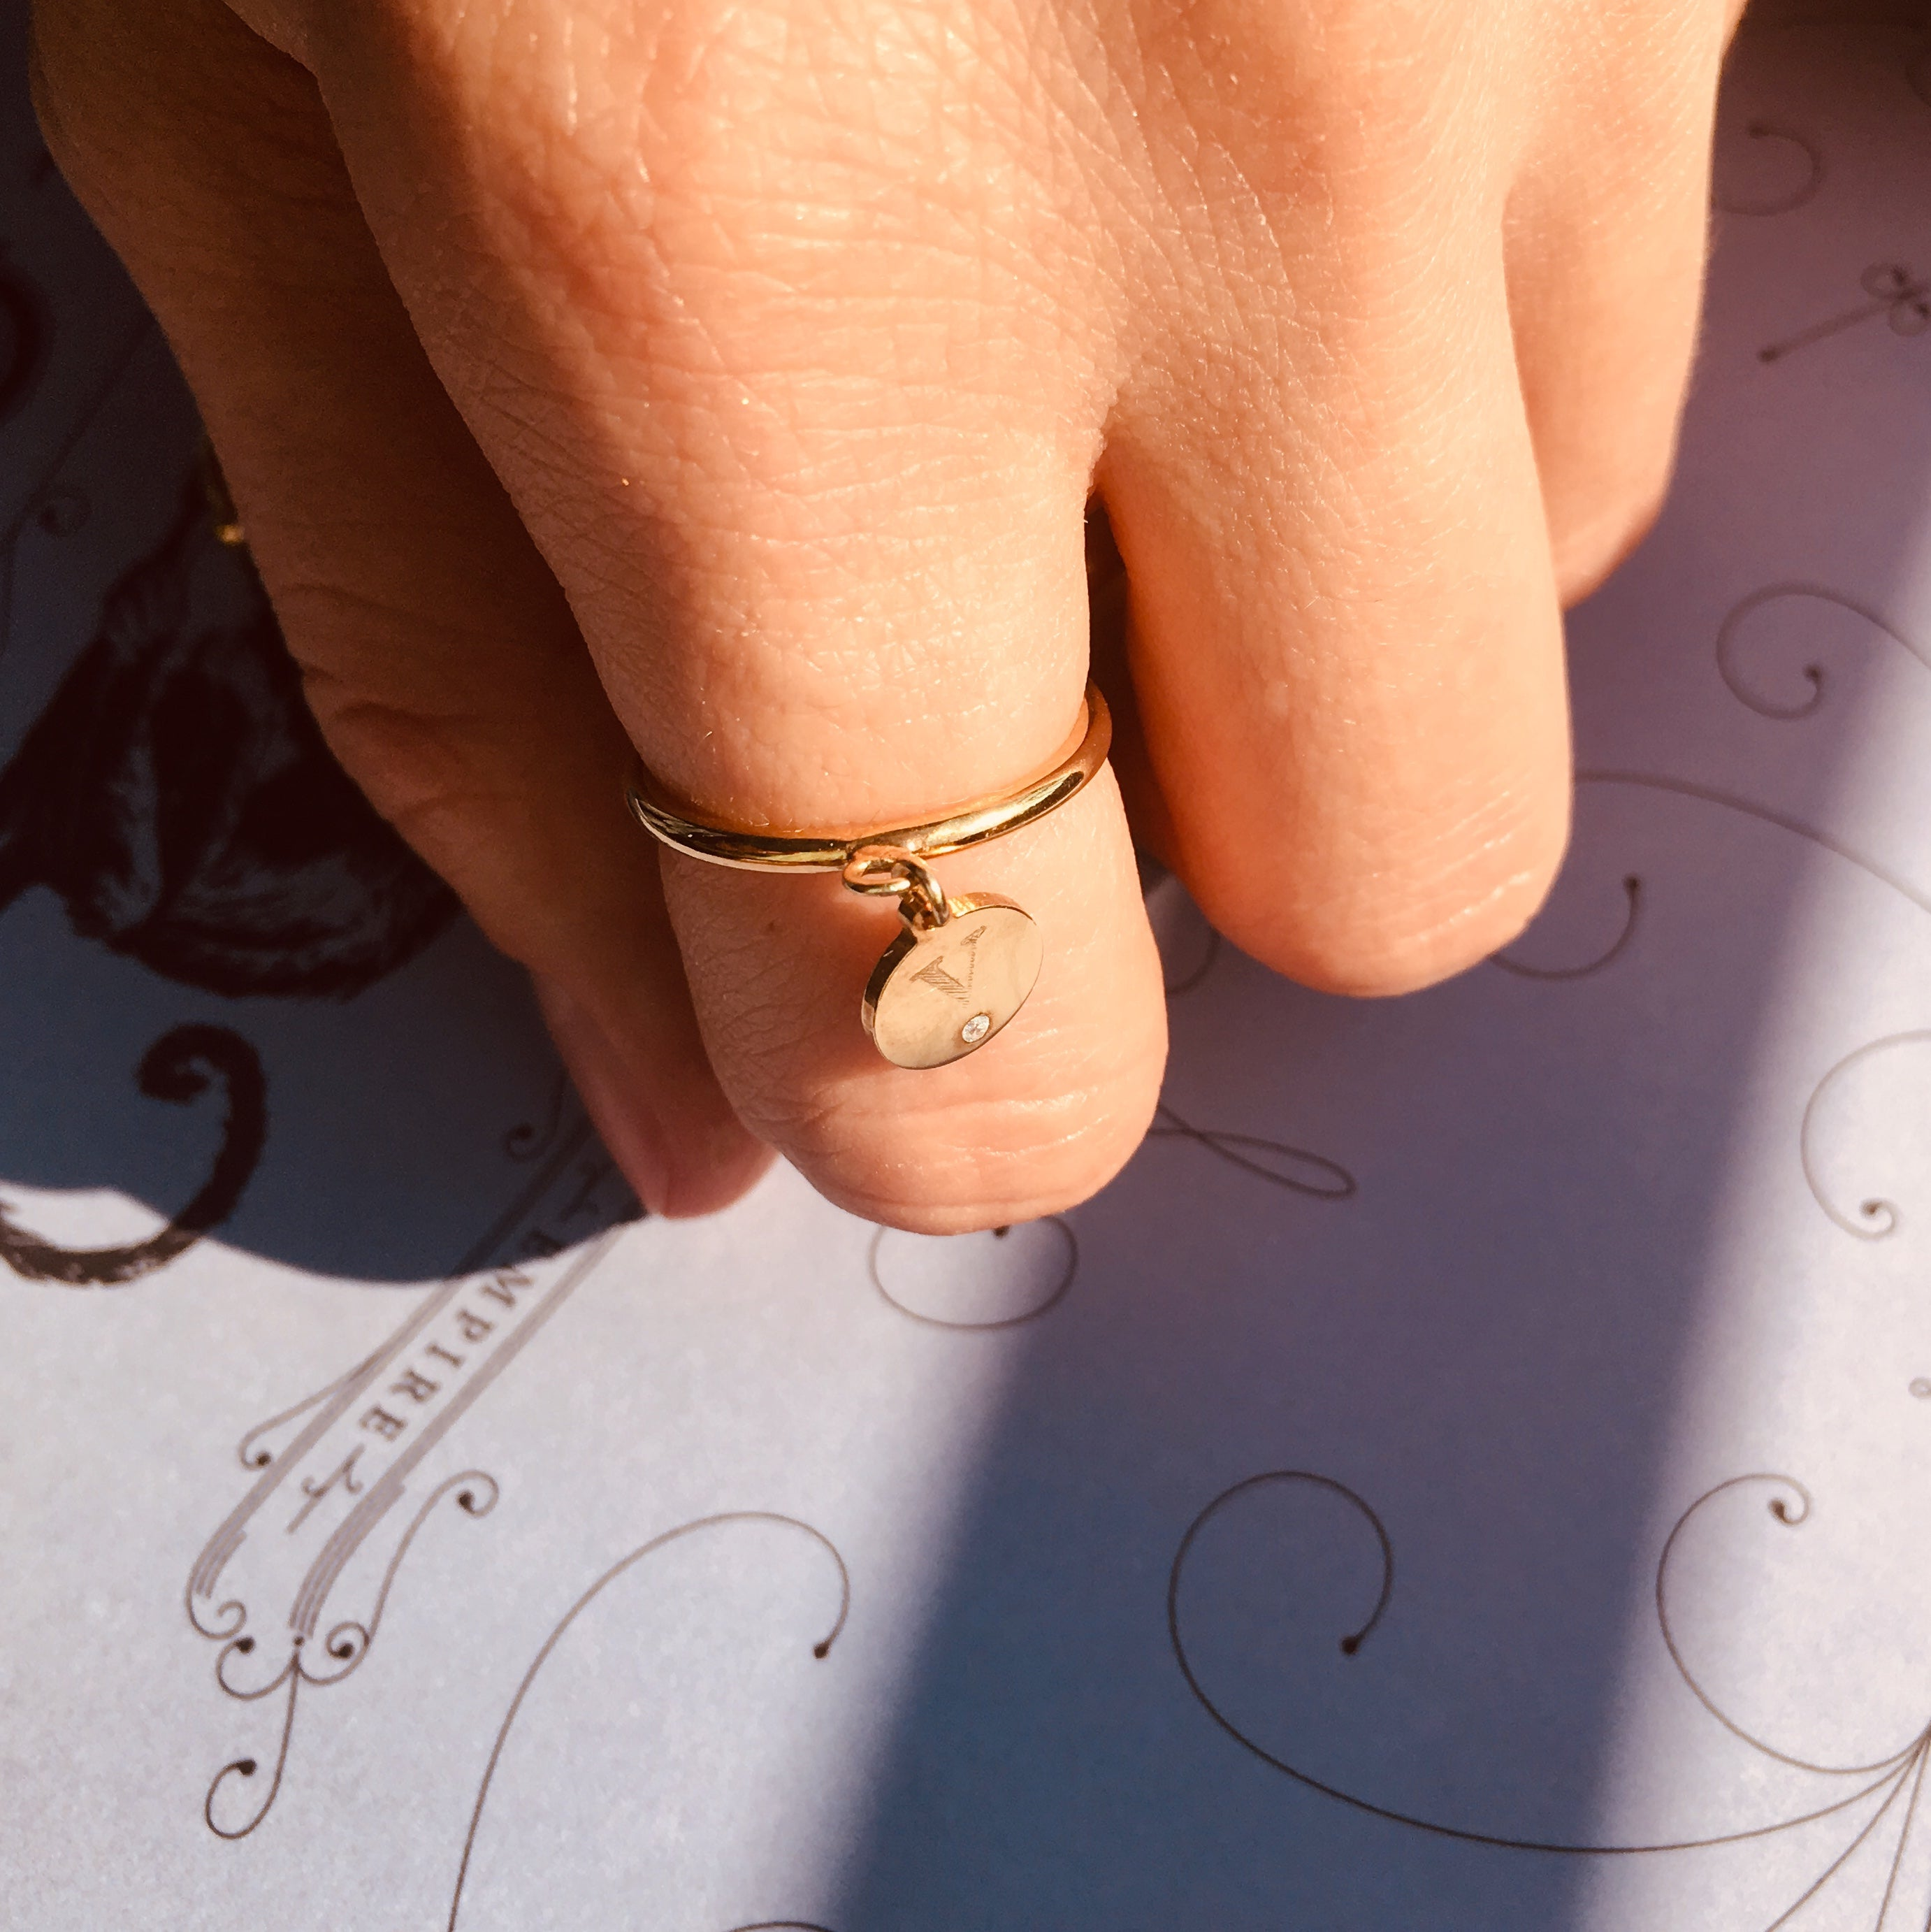 MY INITIAL ring - BYVELA designer jewellery in silver and gold